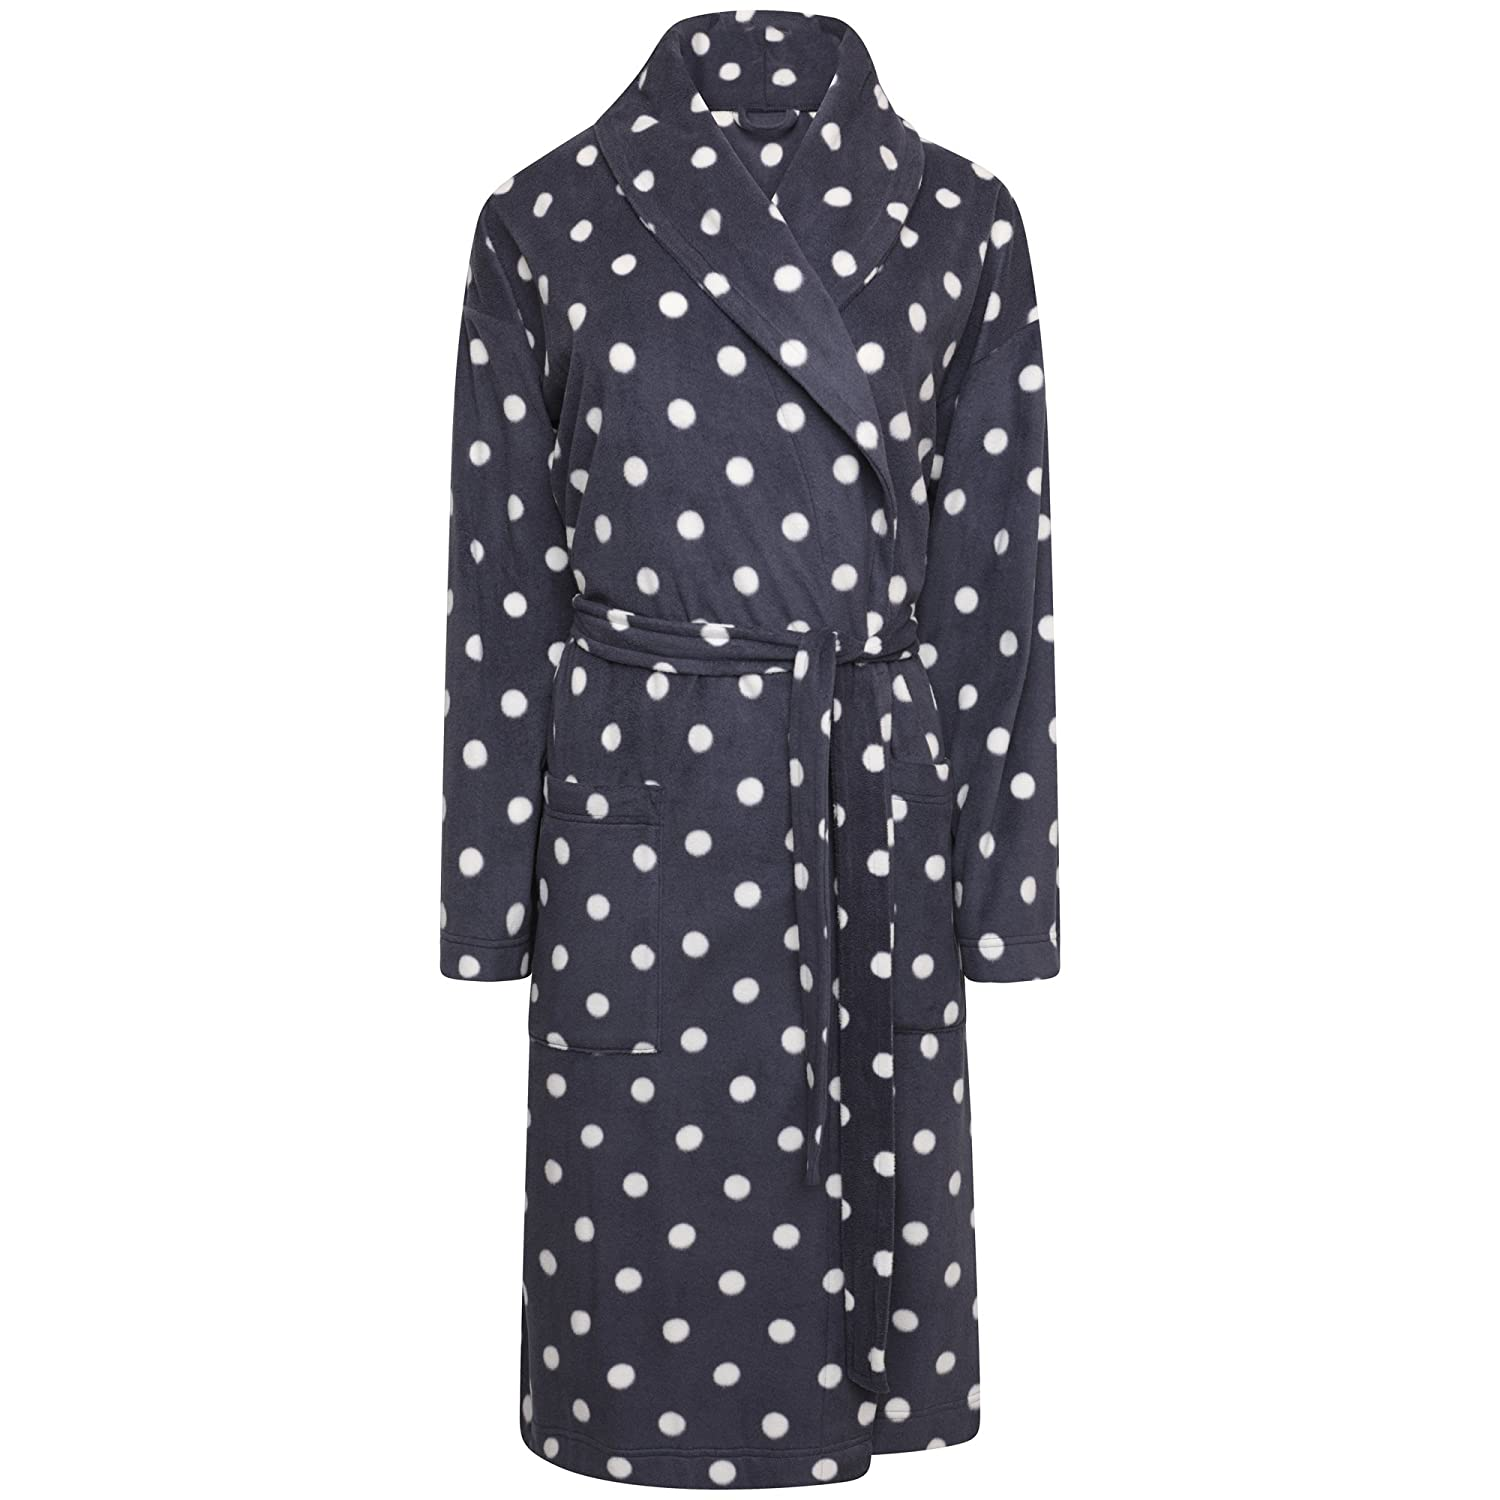 b2dfd652c5 Ladies Spot Fleece Wrapover Dressing Gown. Charcoal or Red. Sizes 8-10 to  20-22  Amazon.co.uk  Clothing